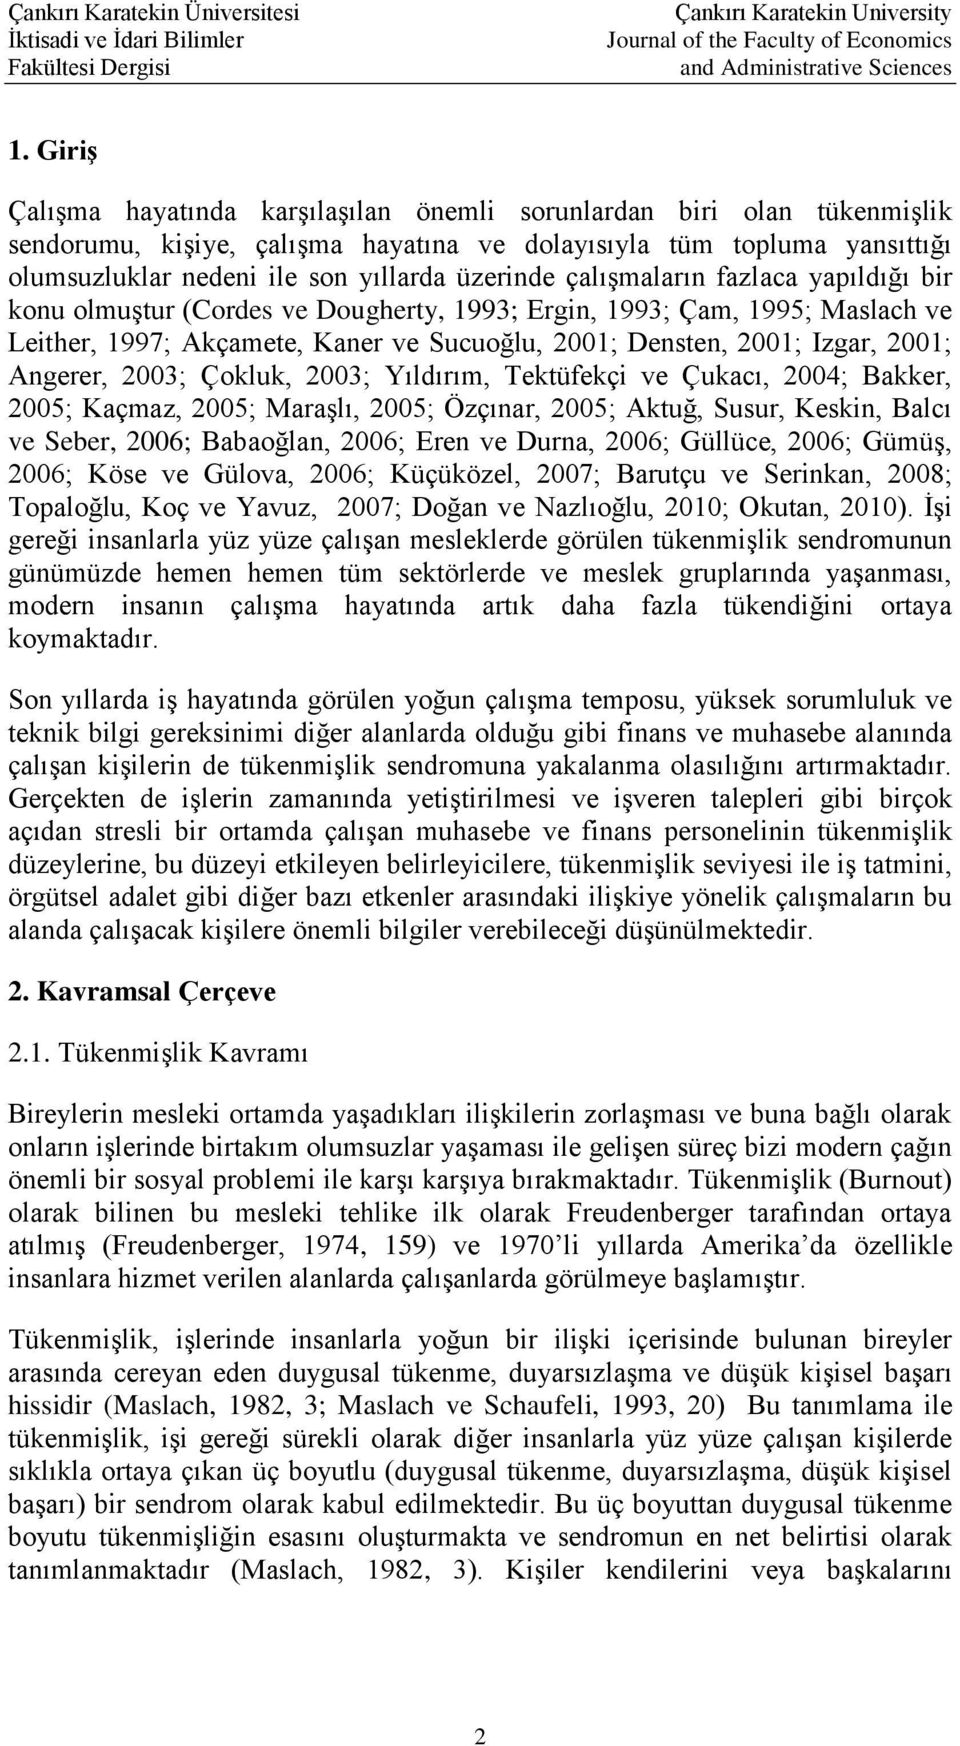 çalışmaların fazlaca yapıldığı bir konu olmuştur (Cordes ve Dougherty, 1993; Ergin, 1993; Çam, 1995; Maslach ve Leither, 1997; Akçamete, Kaner ve Sucuoğlu, 2001; Densten, 2001; Izgar, 2001; Angerer,